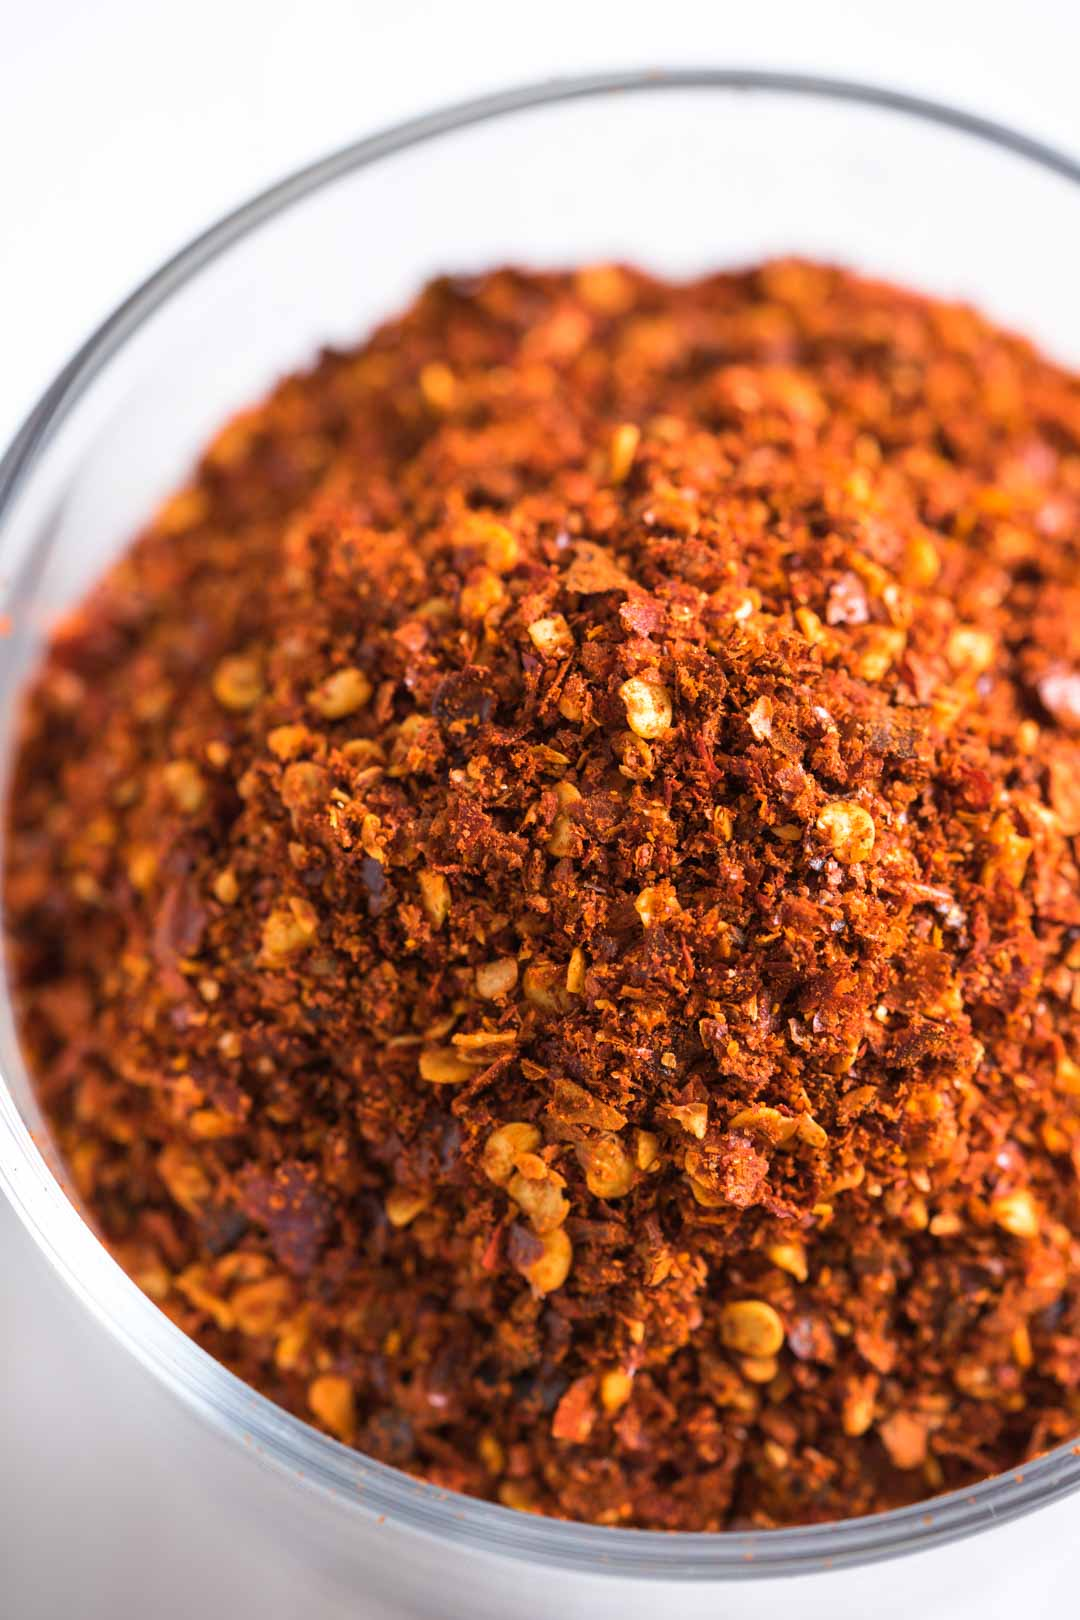 a top view of roasted Thai chili flakes in a cup